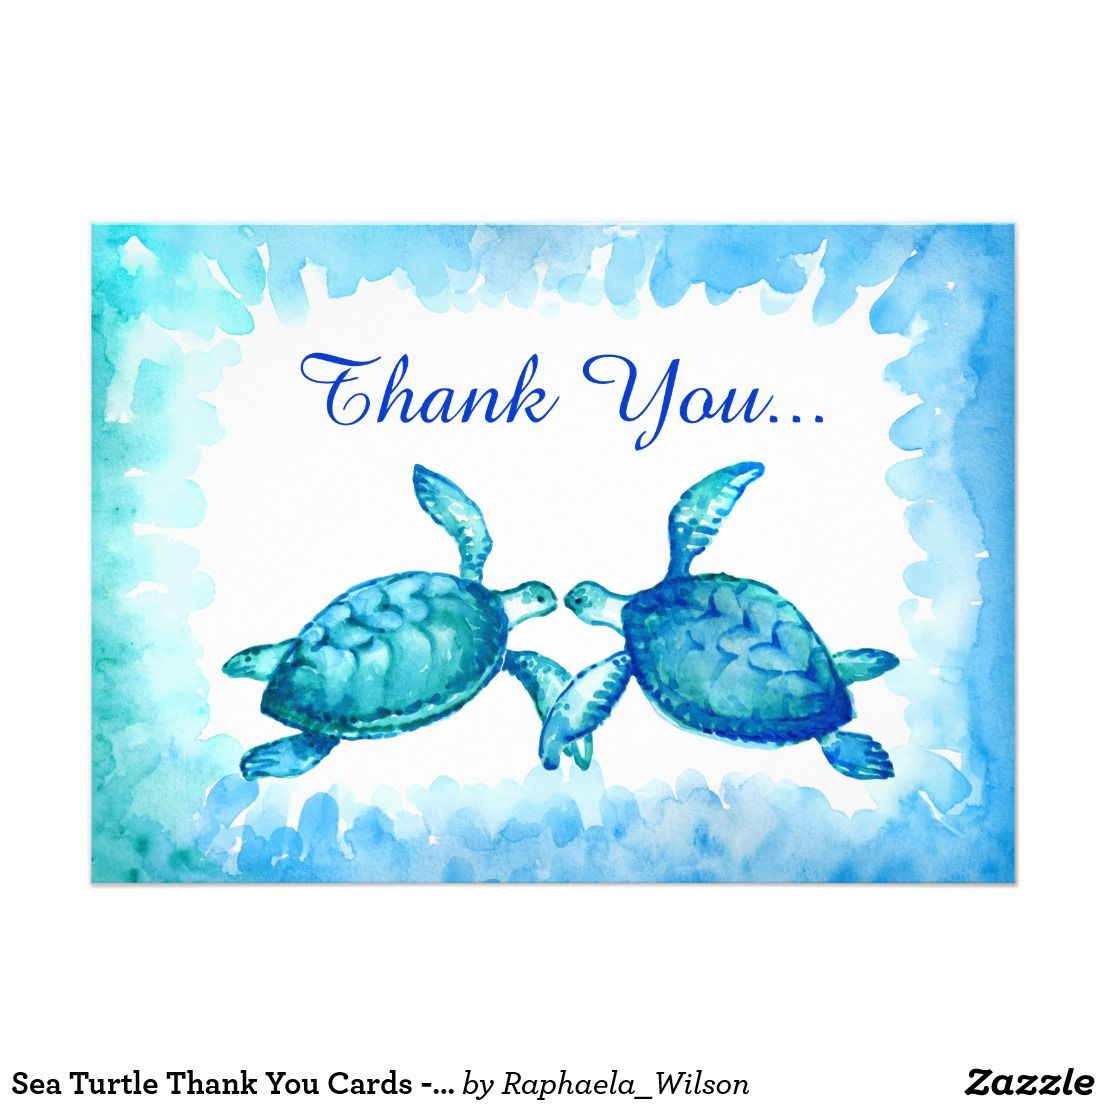 Sea Turtle Wedding Invitations: Sea Turtle Thank You Cards - Blue Teal Watercolor